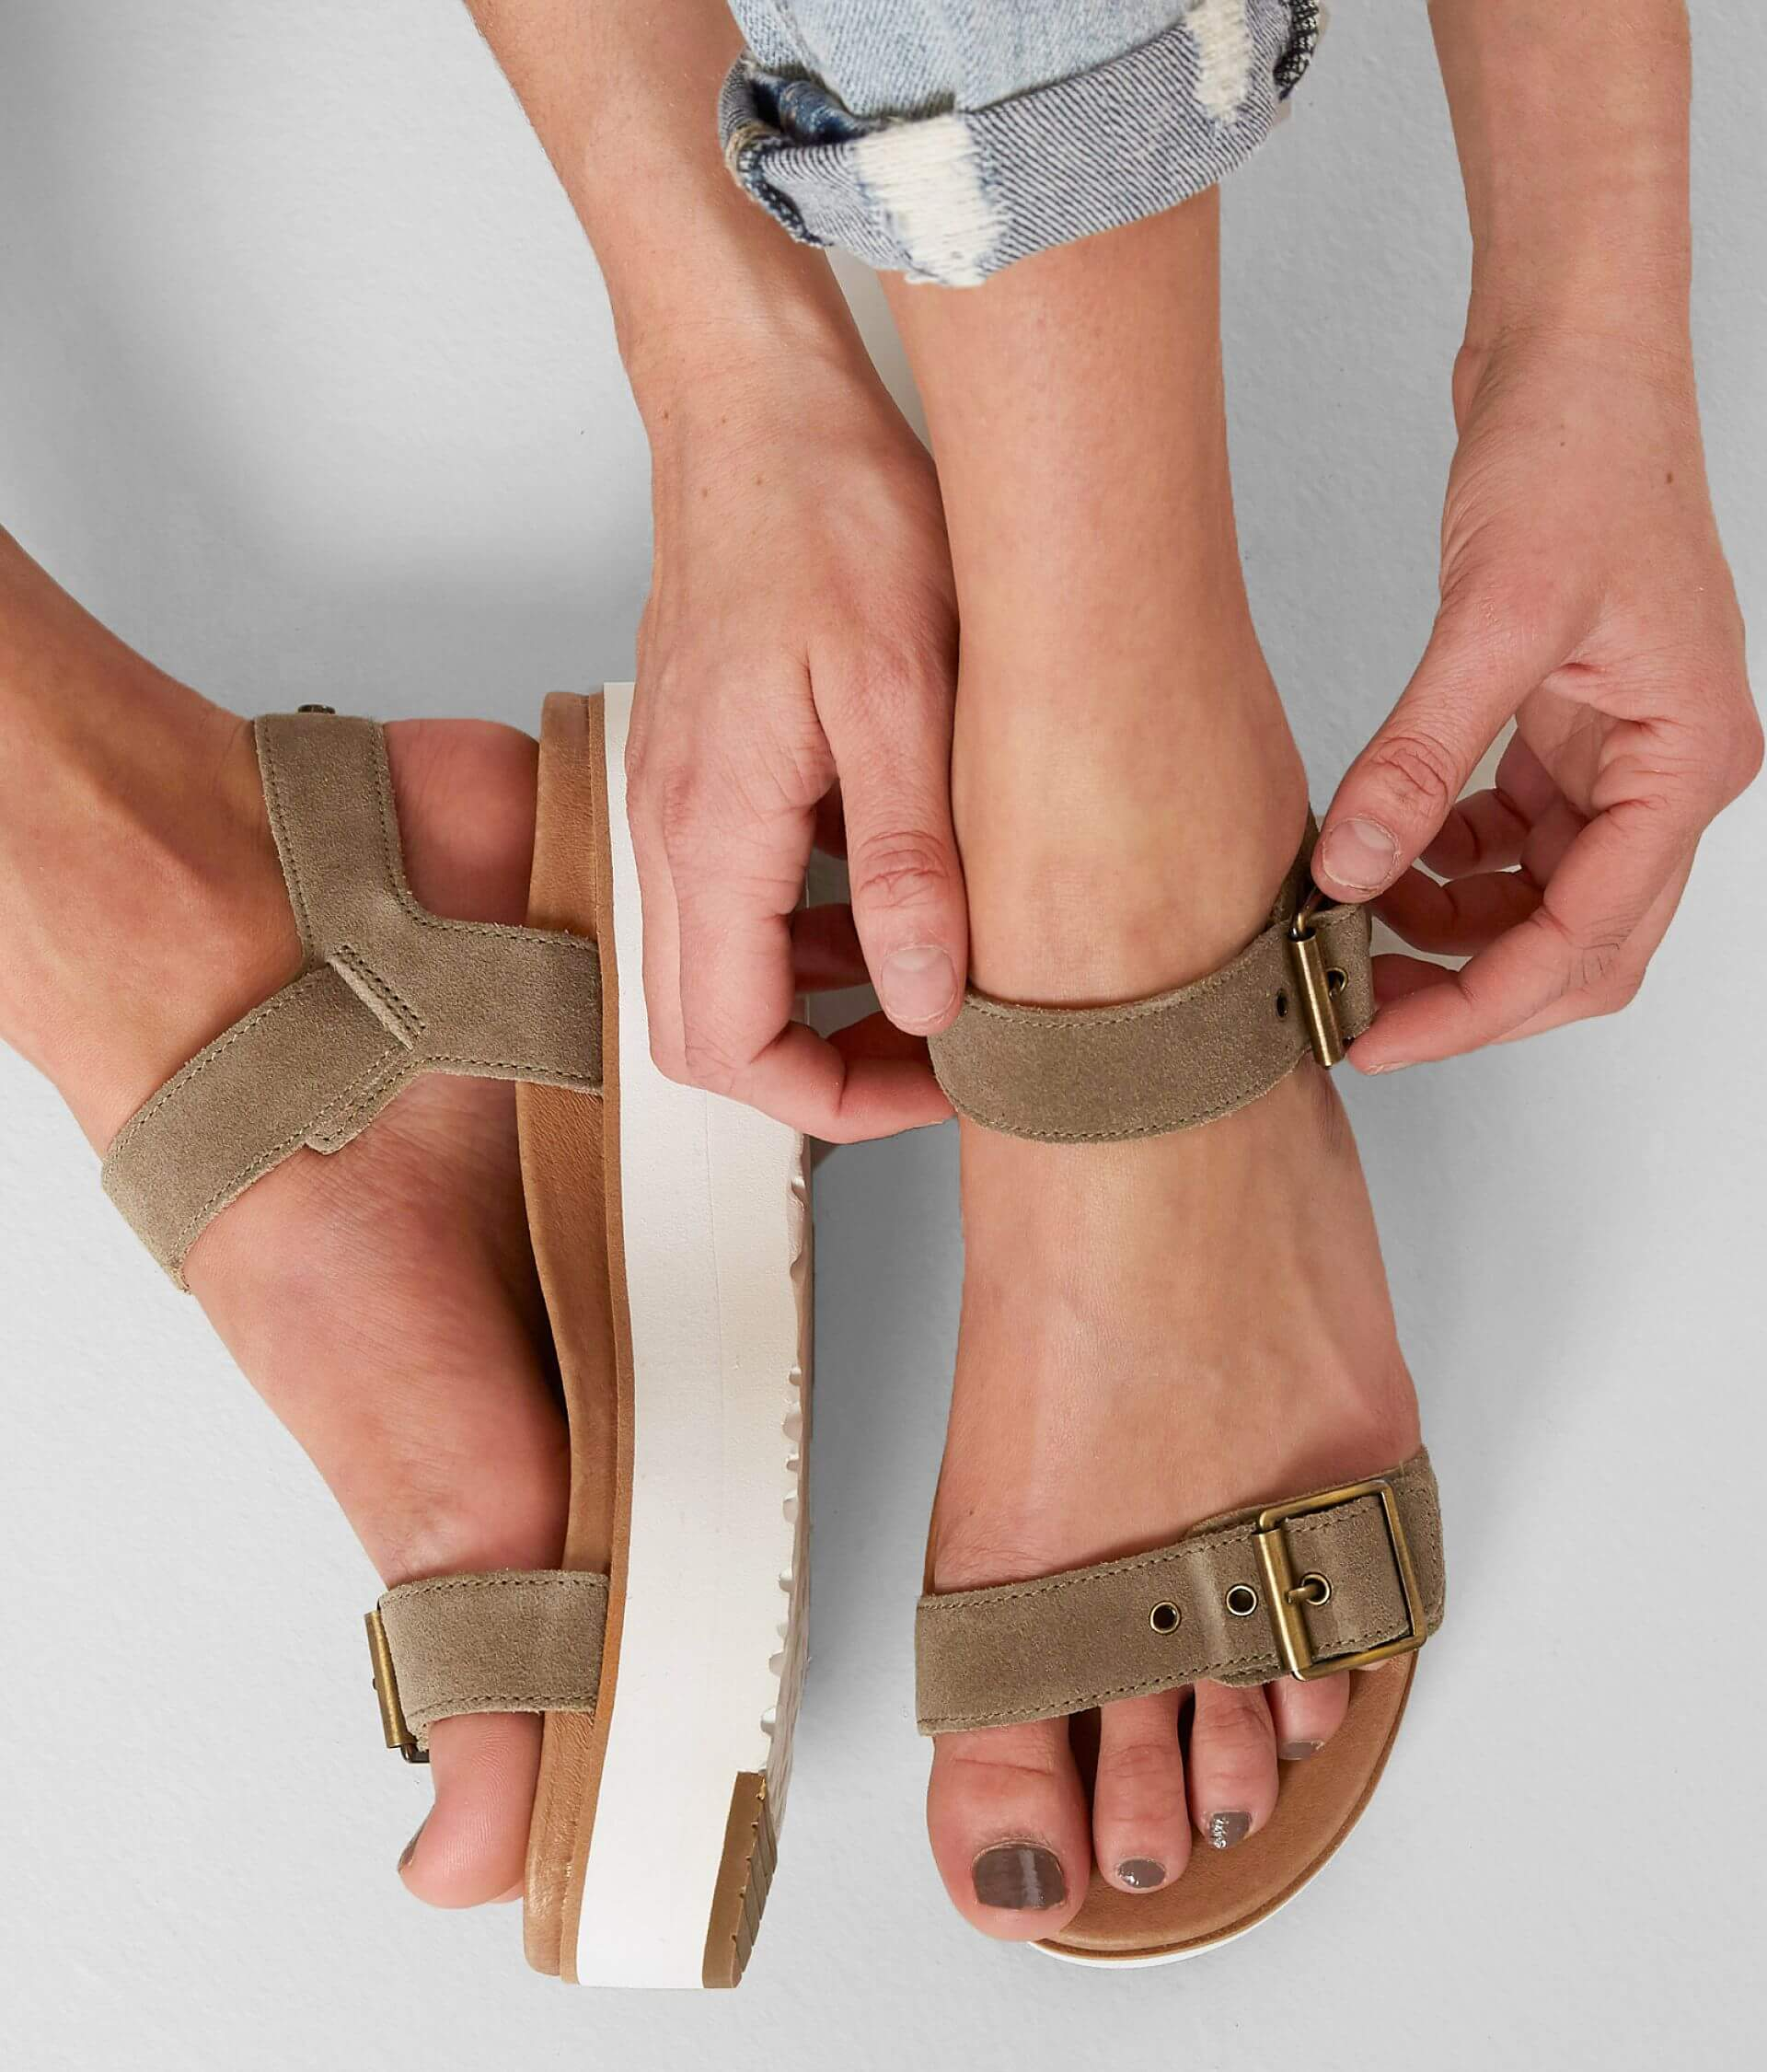 680feda3d09 UGG® Angie Sandal - Women's Shoes in Antilope | Buckle